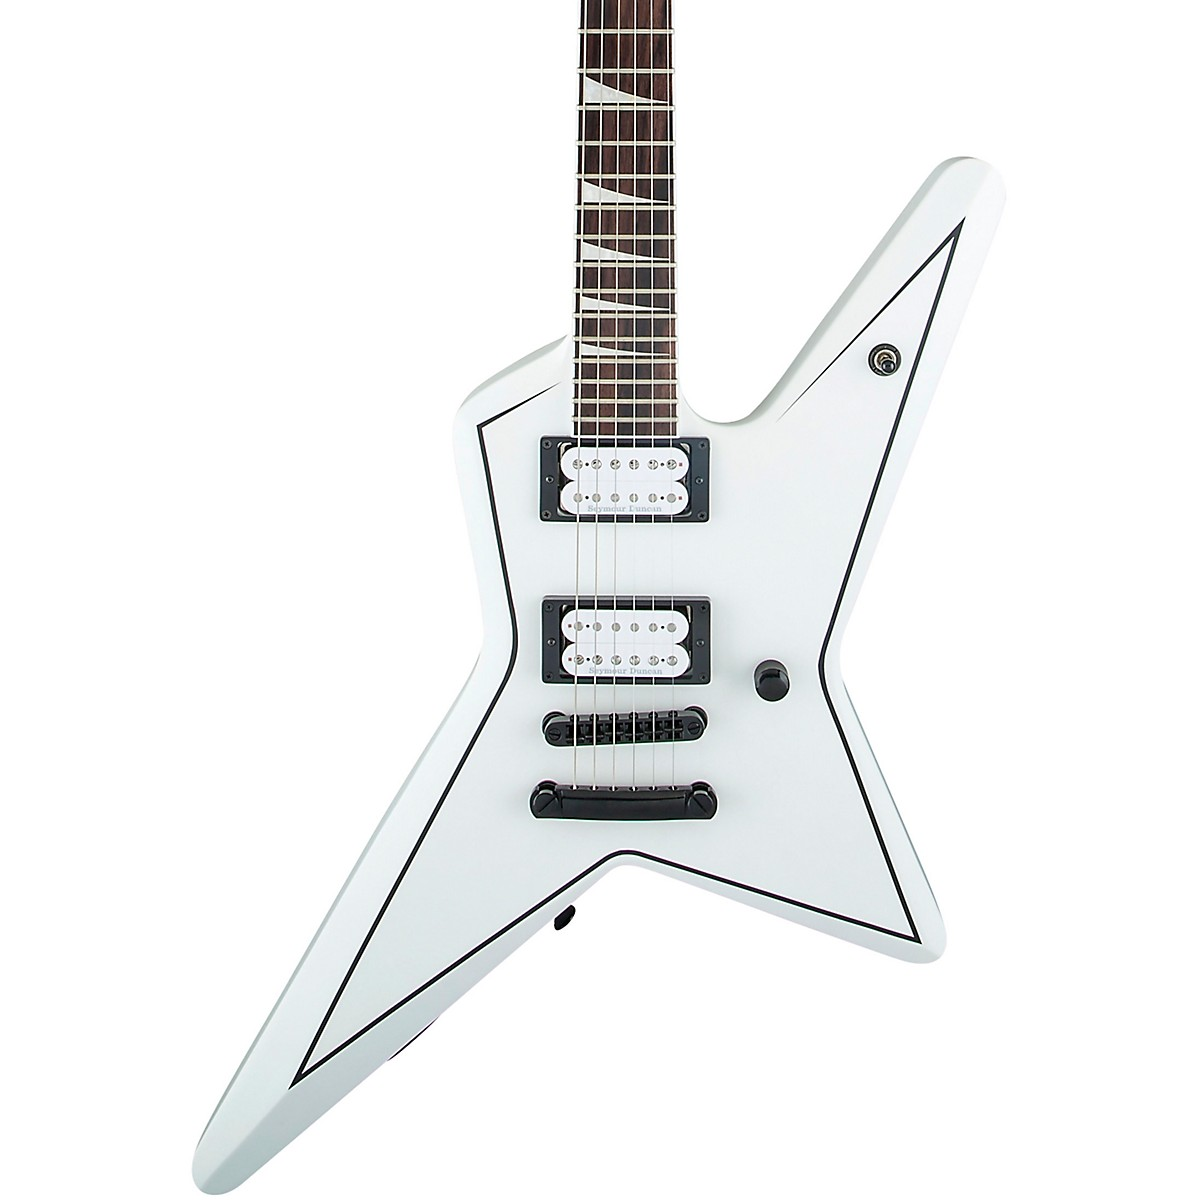 X Series Signature Gus G. Star Electric Guitar Satin White with Black Pinstripes